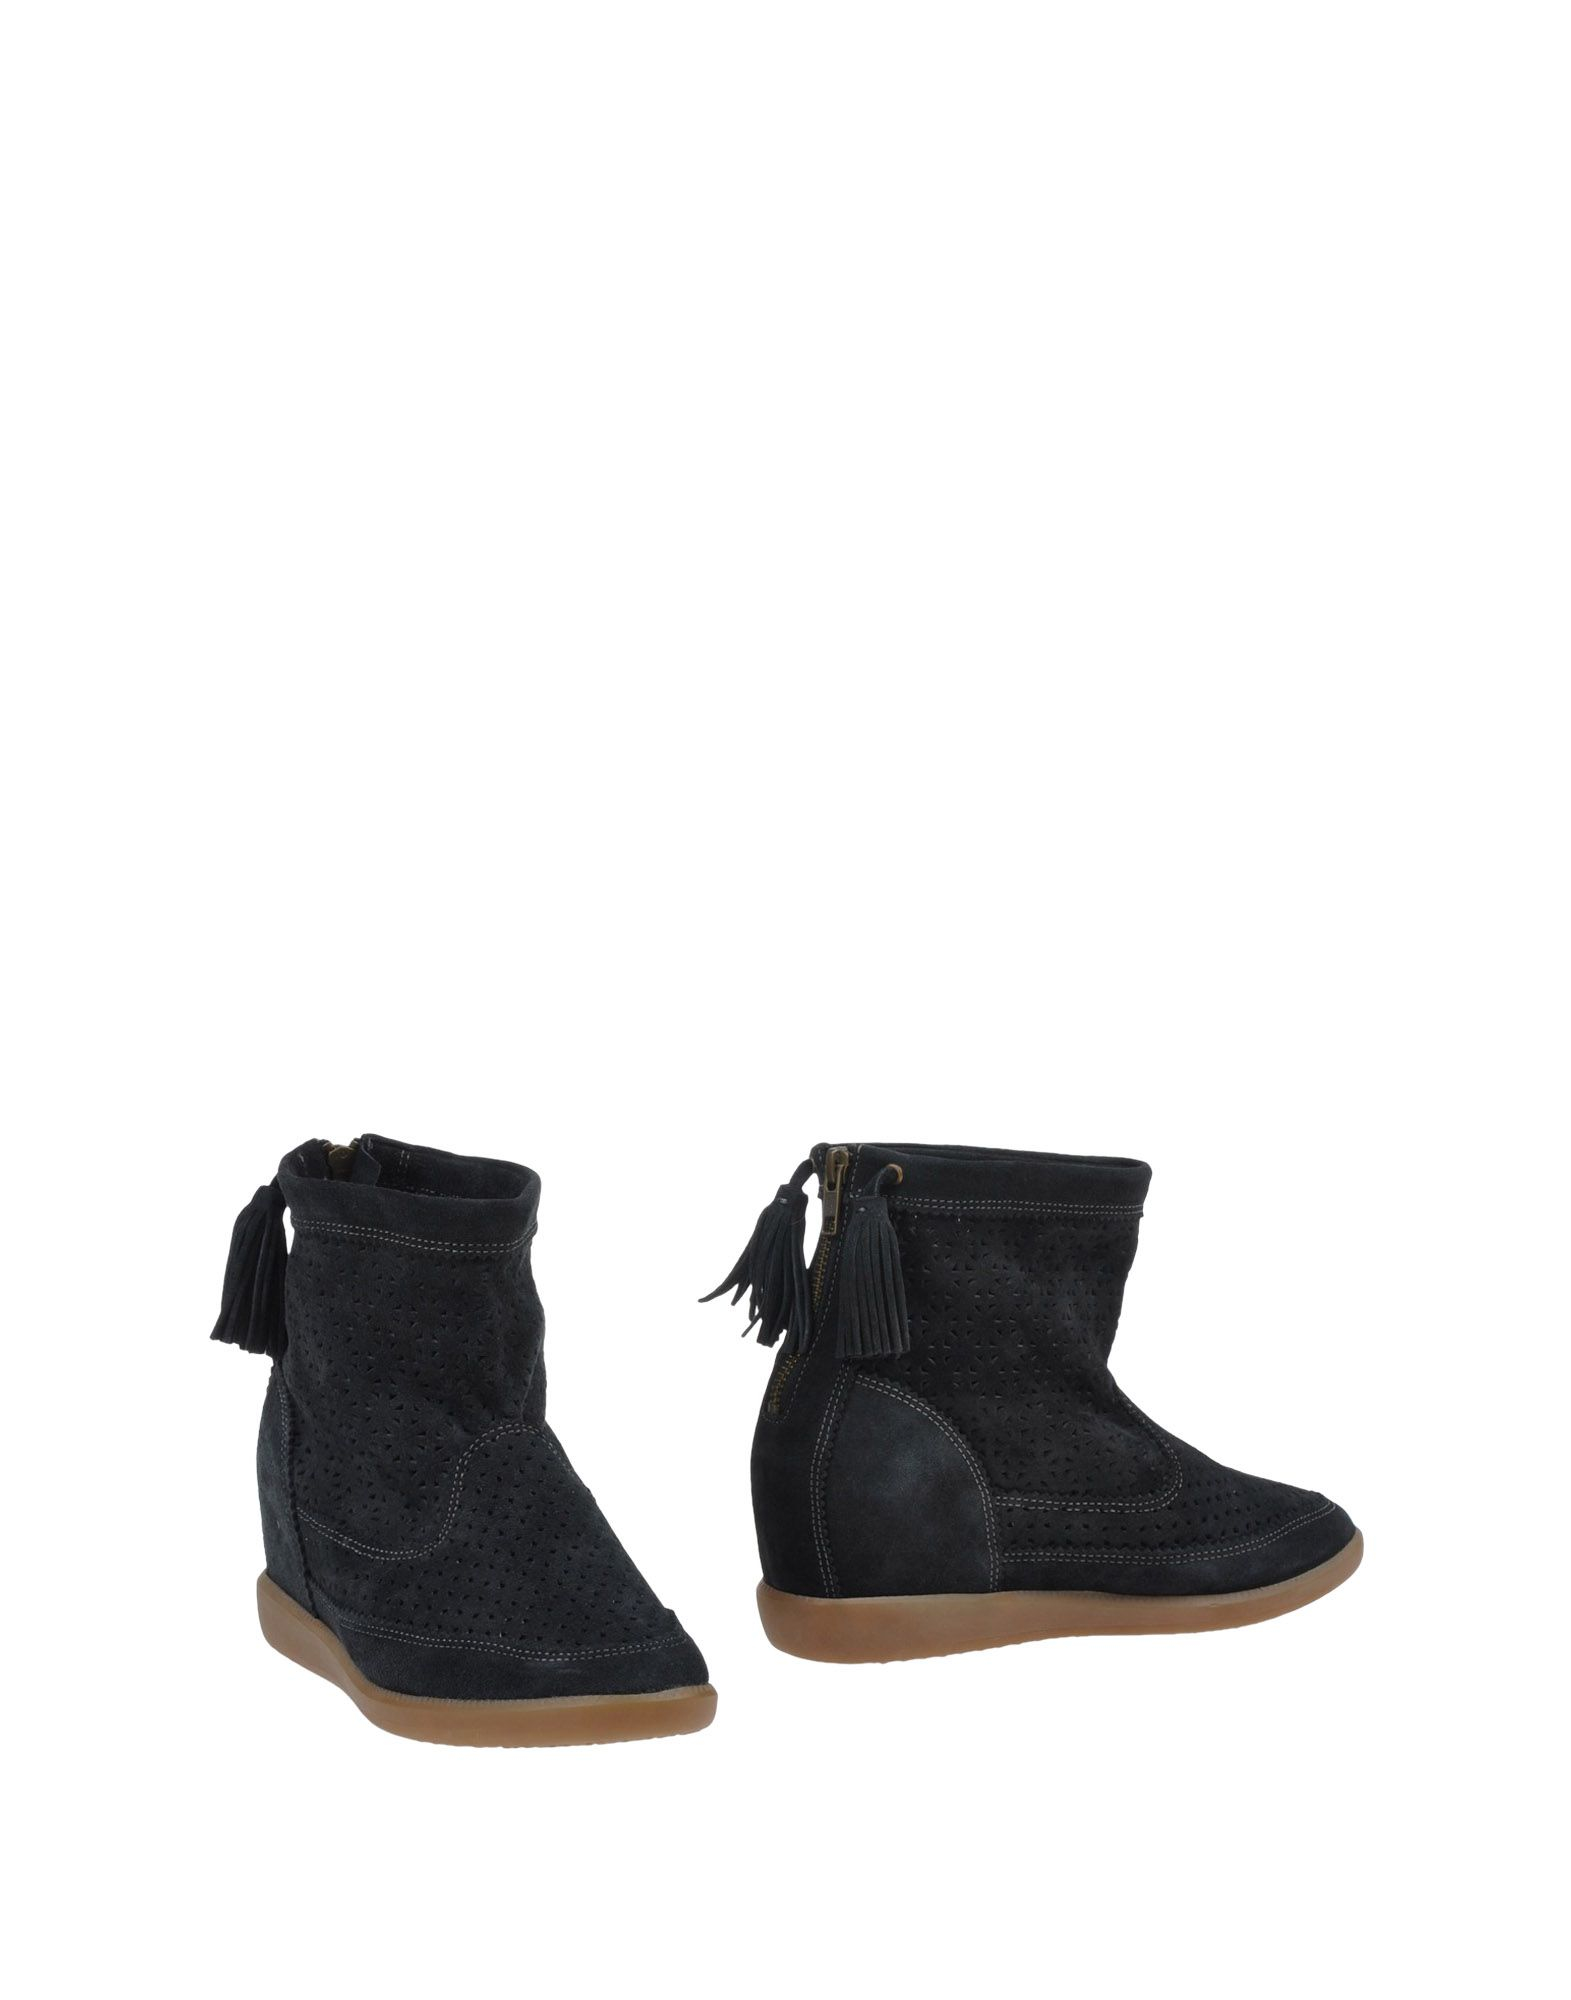 lyst isabel marant perforated calfskin ankle boots in black. Black Bedroom Furniture Sets. Home Design Ideas